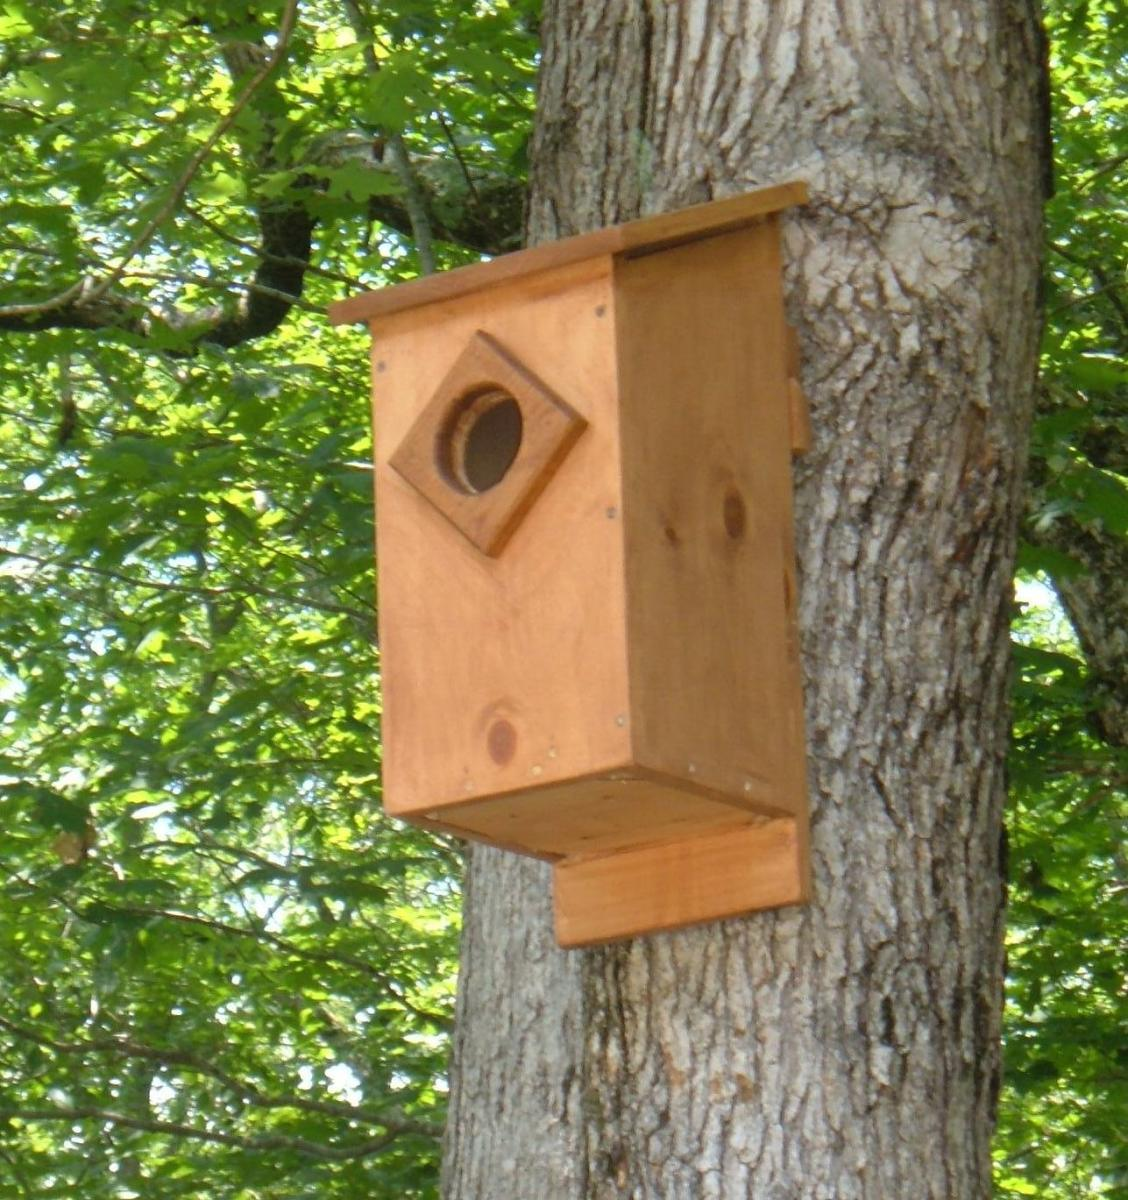 Screech Owl House Plans: How to Build a Screech Owl Box ...